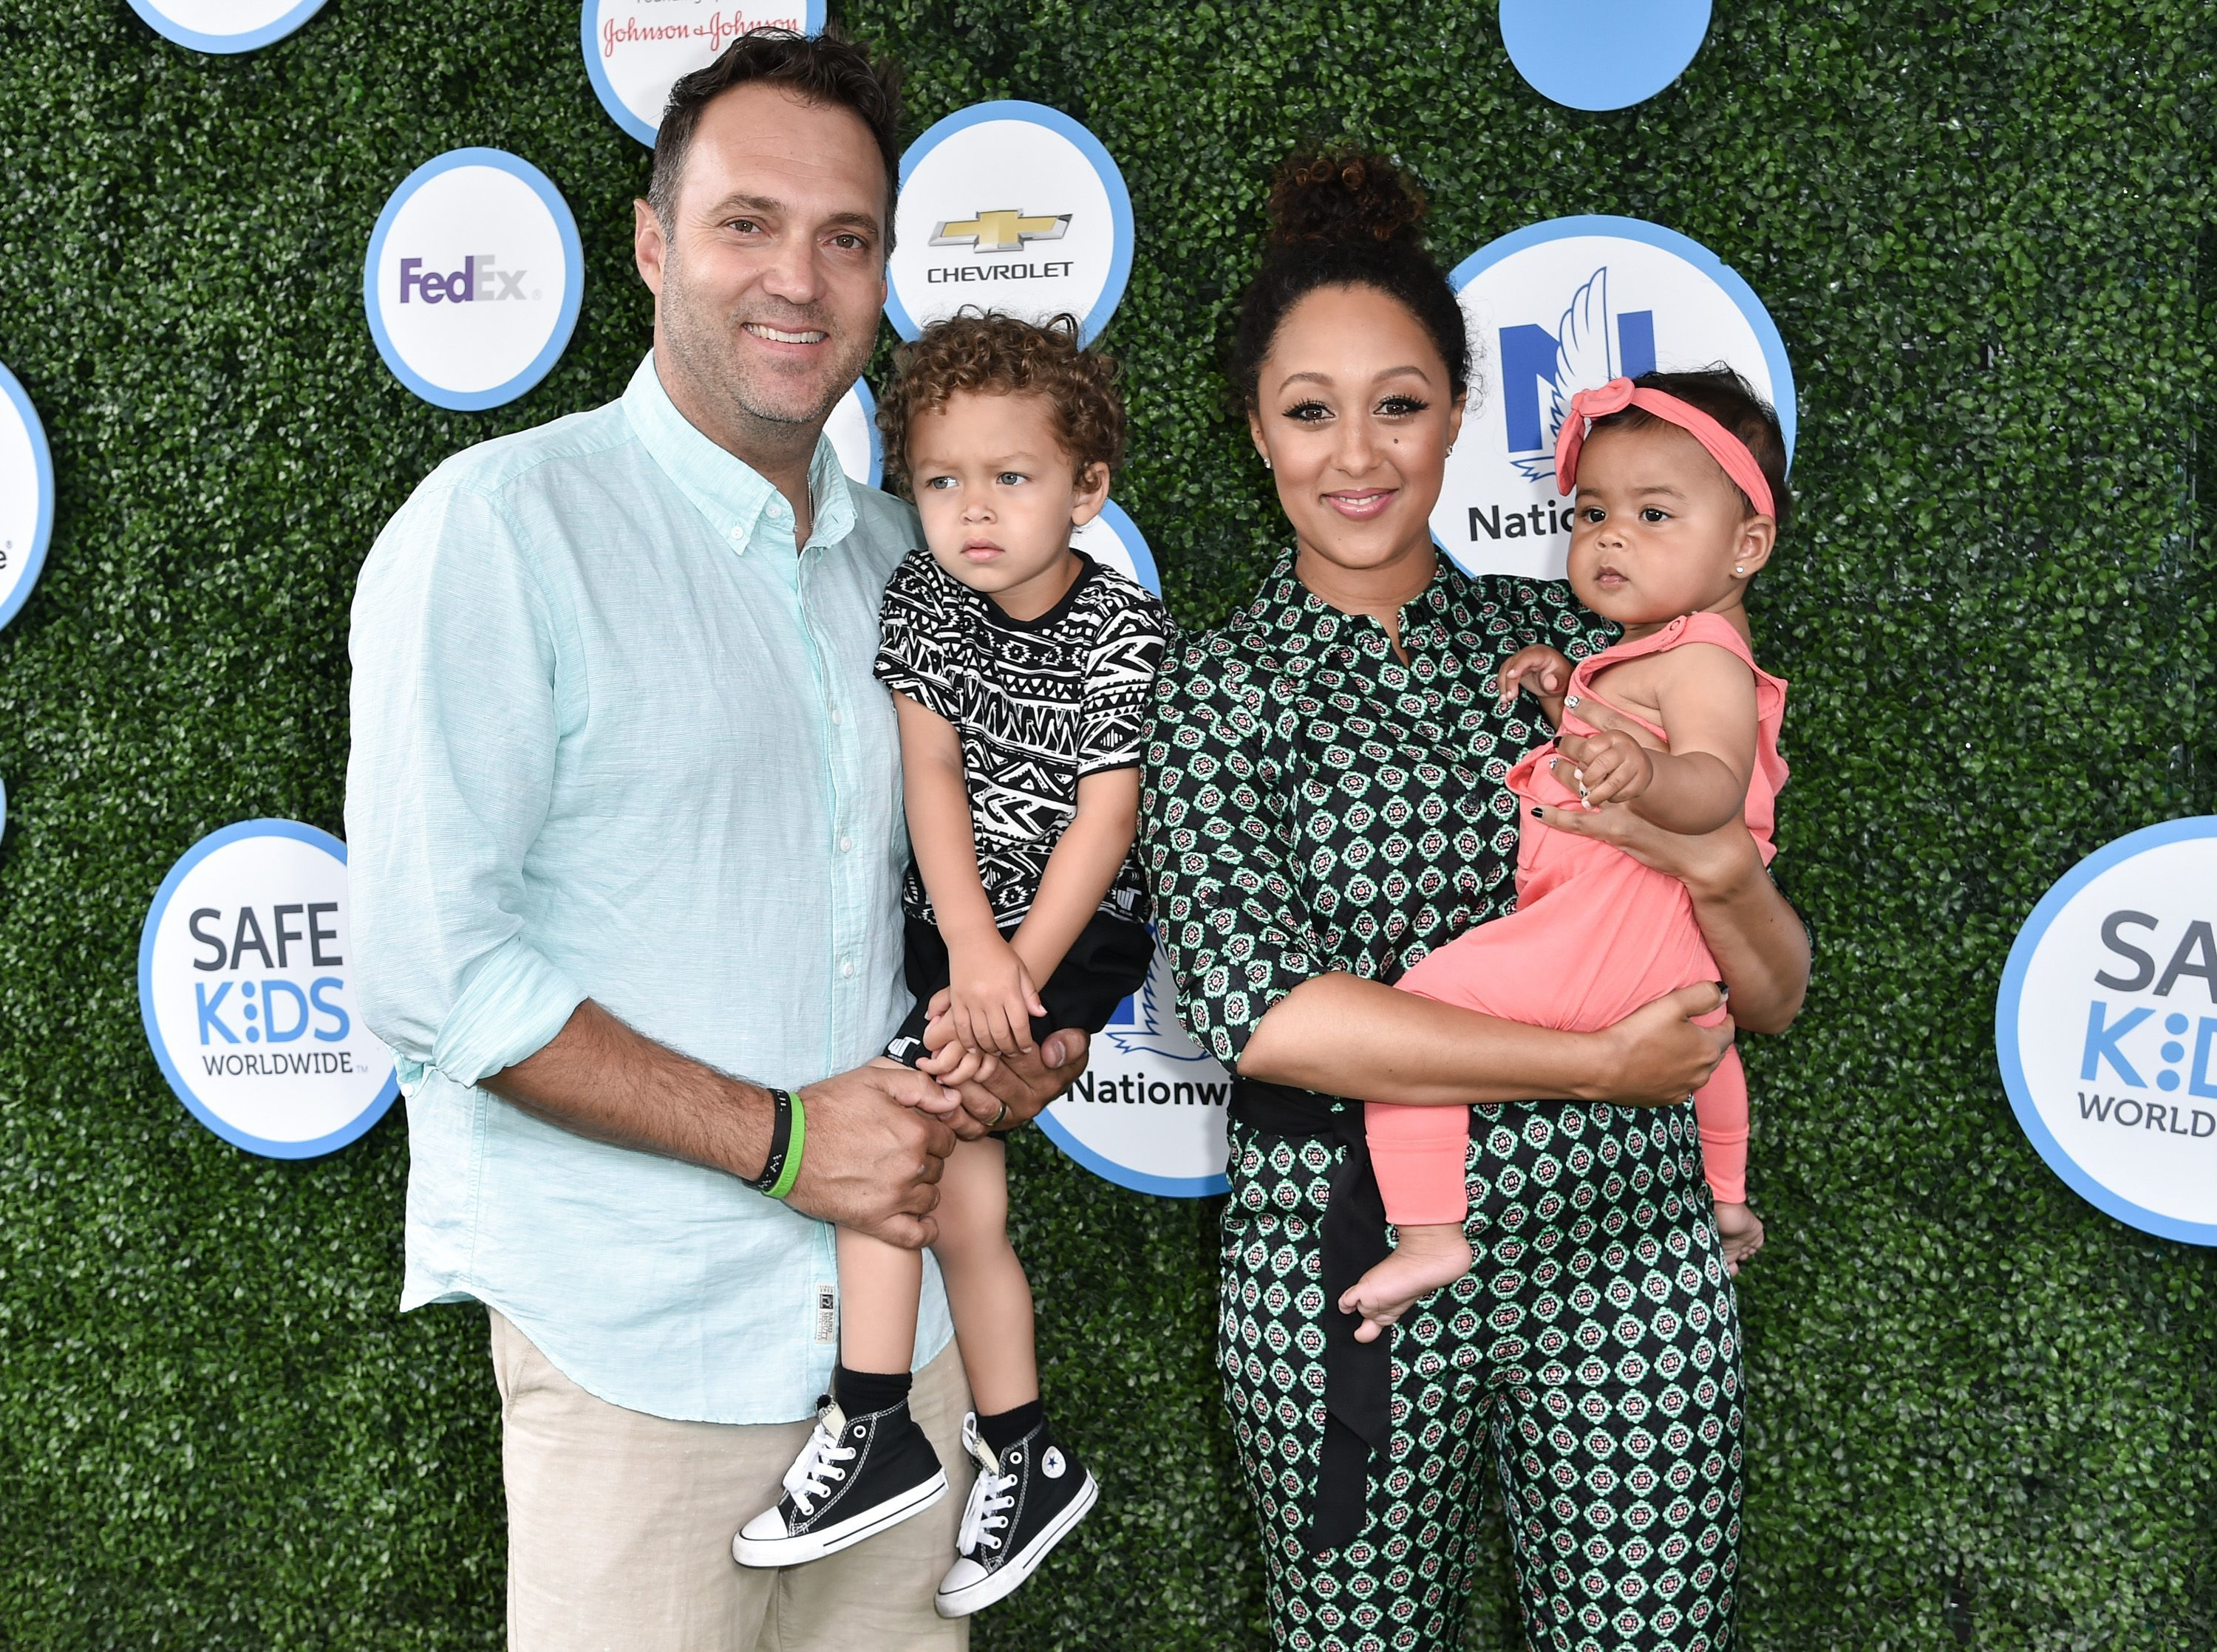 Tamera Mowry on how her son and daughter are different: